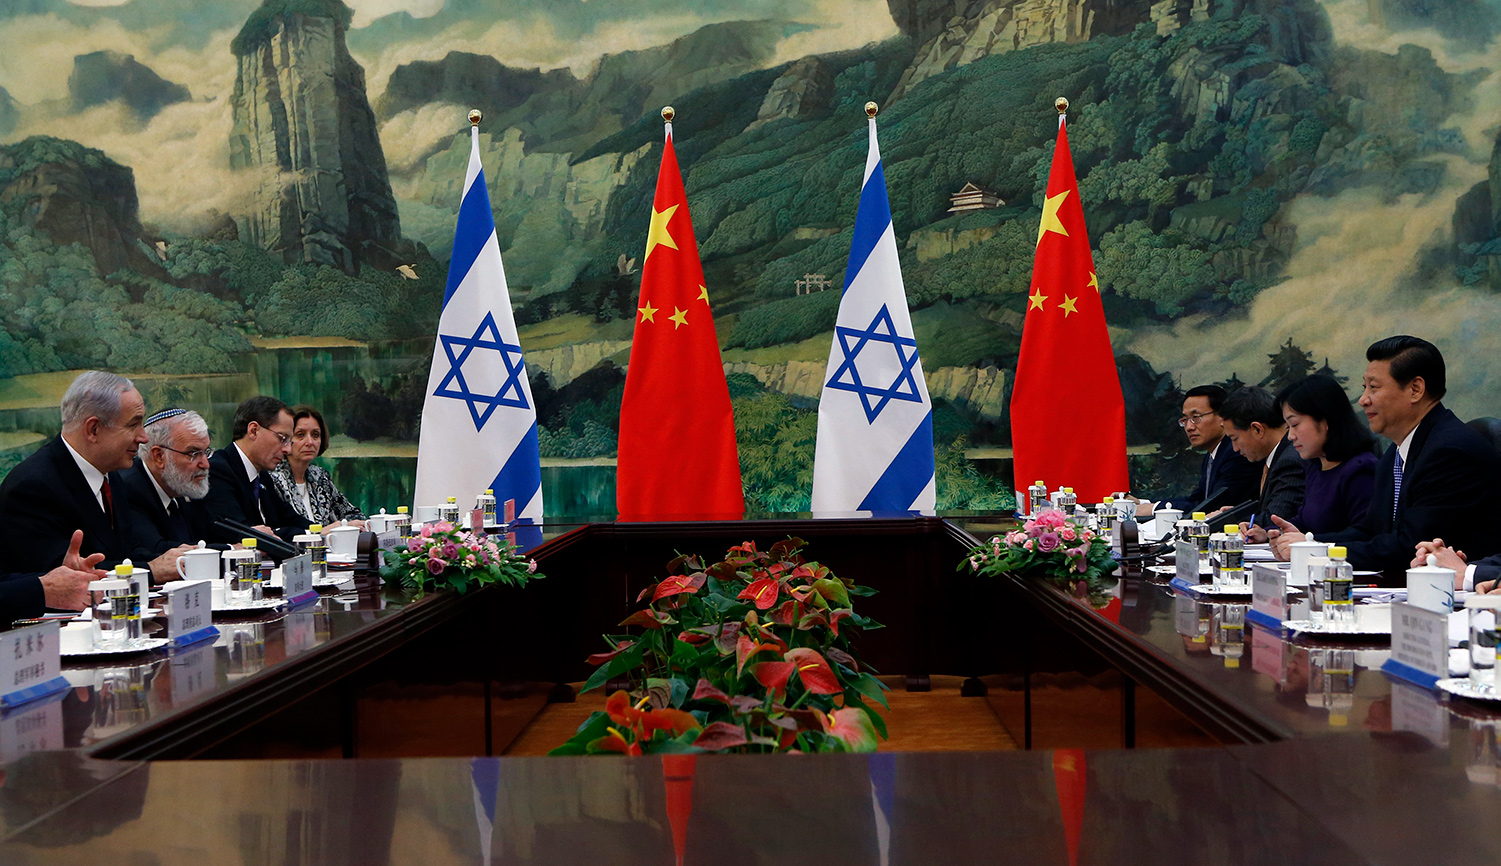 Chinese President Xi Jinping meets with Israeli Prime Minister Benjamin Netanyahu on May 9, 2013 in Beijing. Kim Kyung-Hoon-Pool/Getty Images.